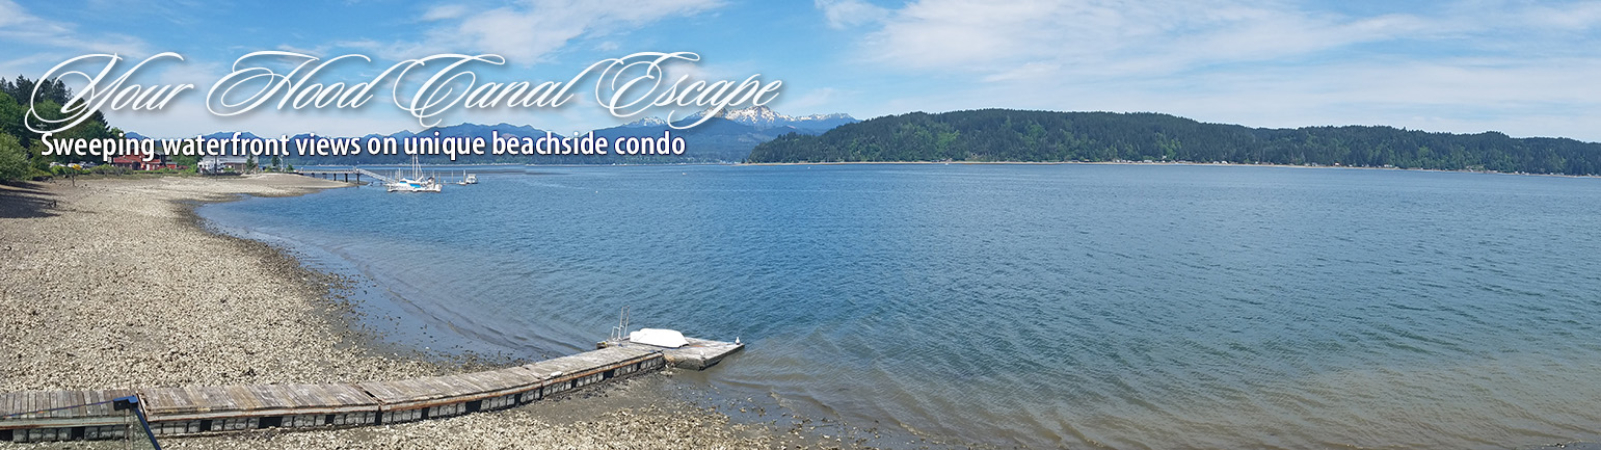 Your Hood Canal Escape